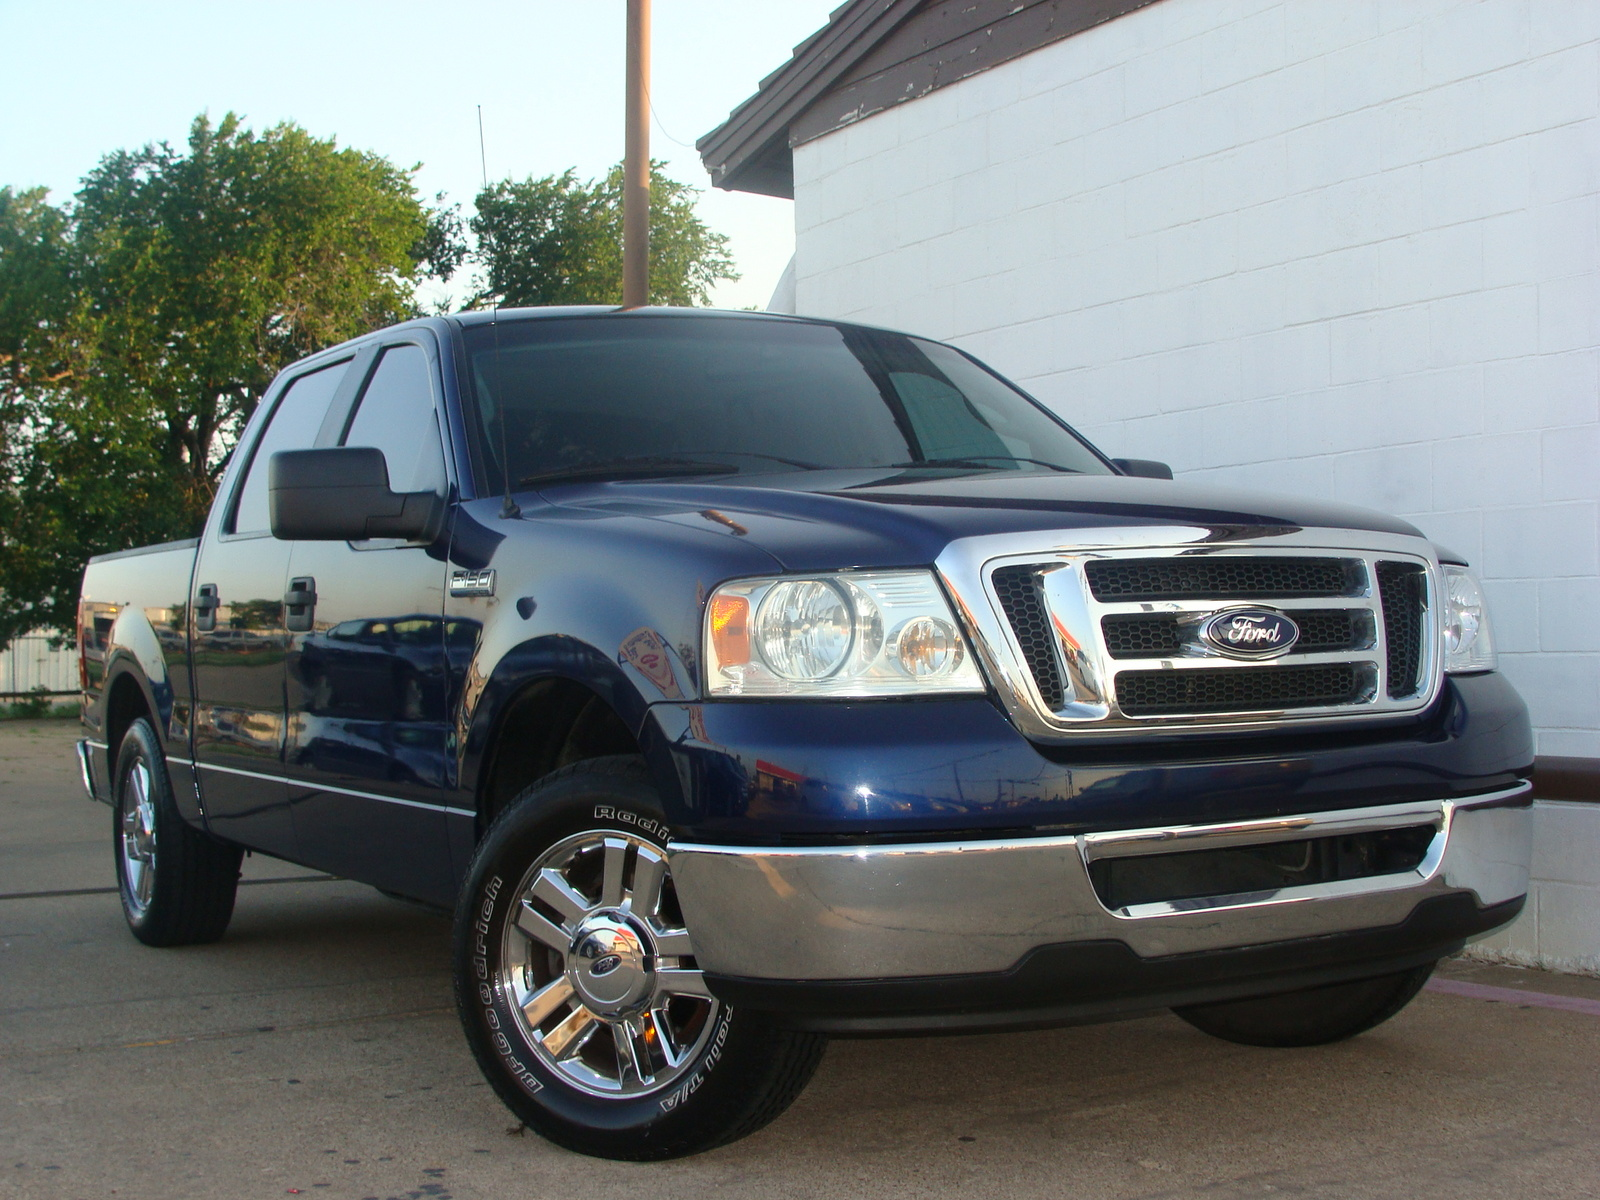 2007 ford f150 fx4 supercrew reviews autos weblog. Black Bedroom Furniture Sets. Home Design Ideas